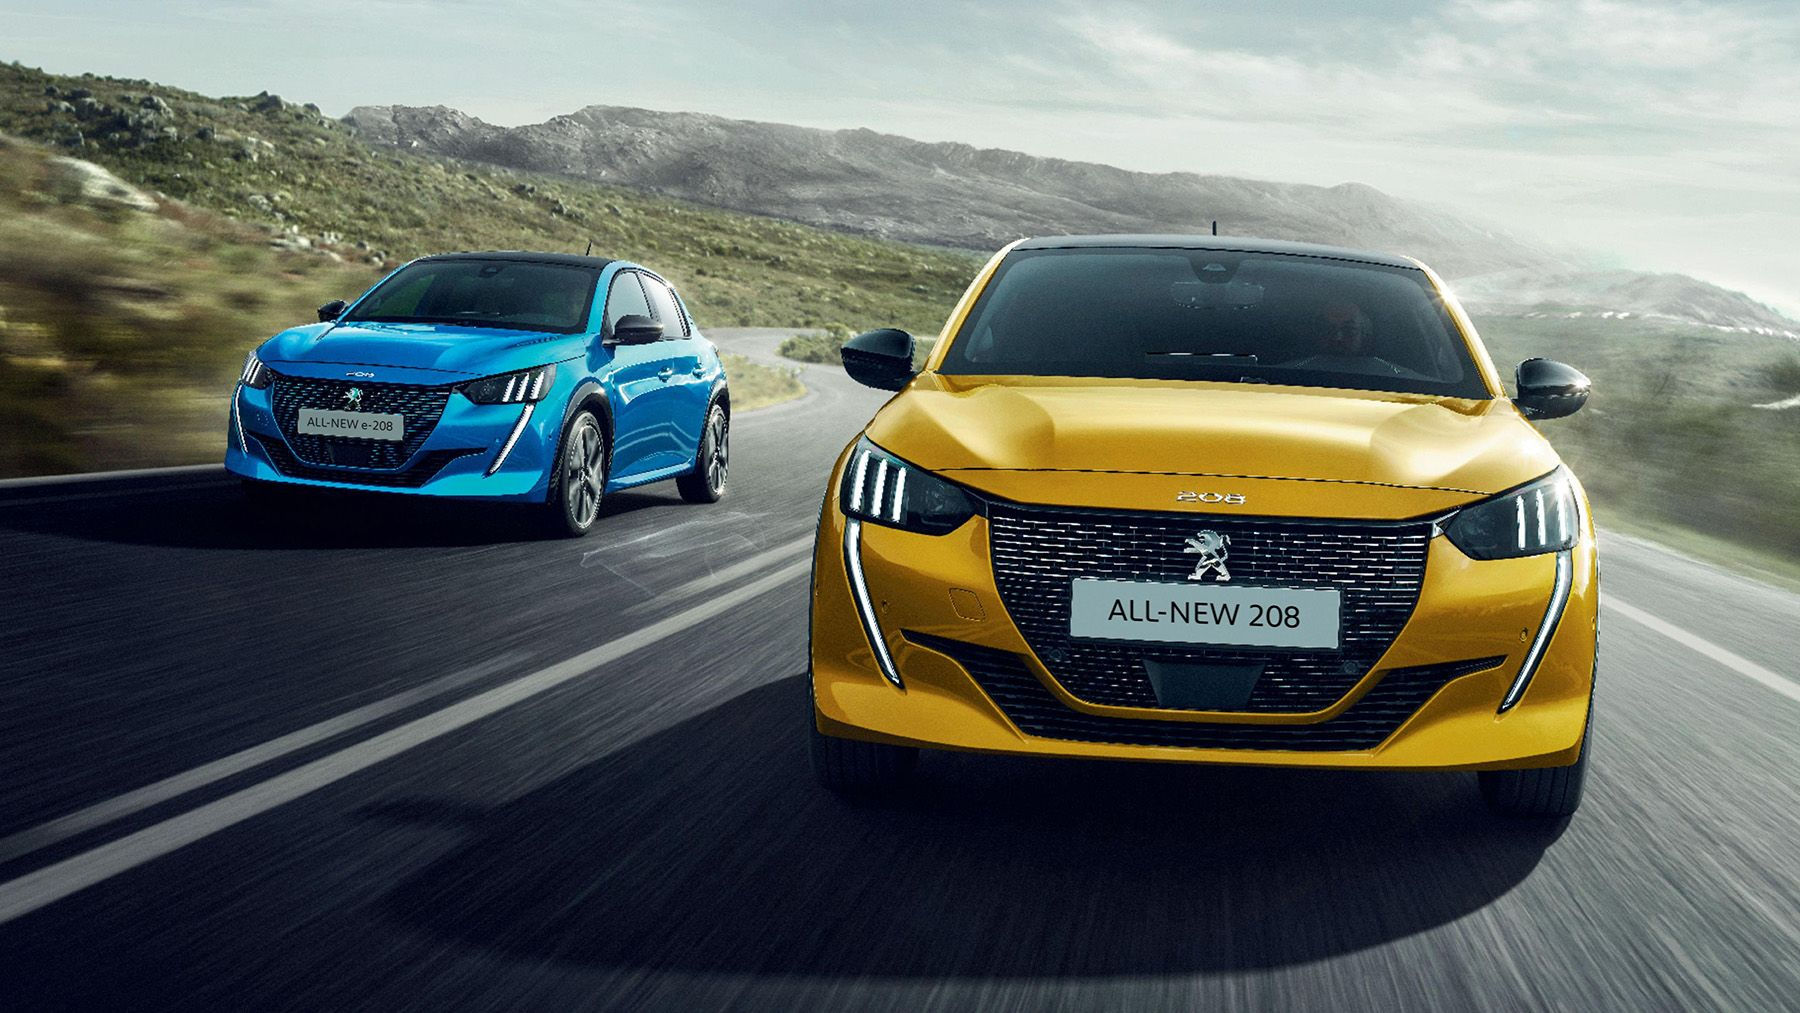 Here Are 5 Peugeot And Citroen Vehicles We D Like To See In The Us If The Fca And Psa Merger Happens